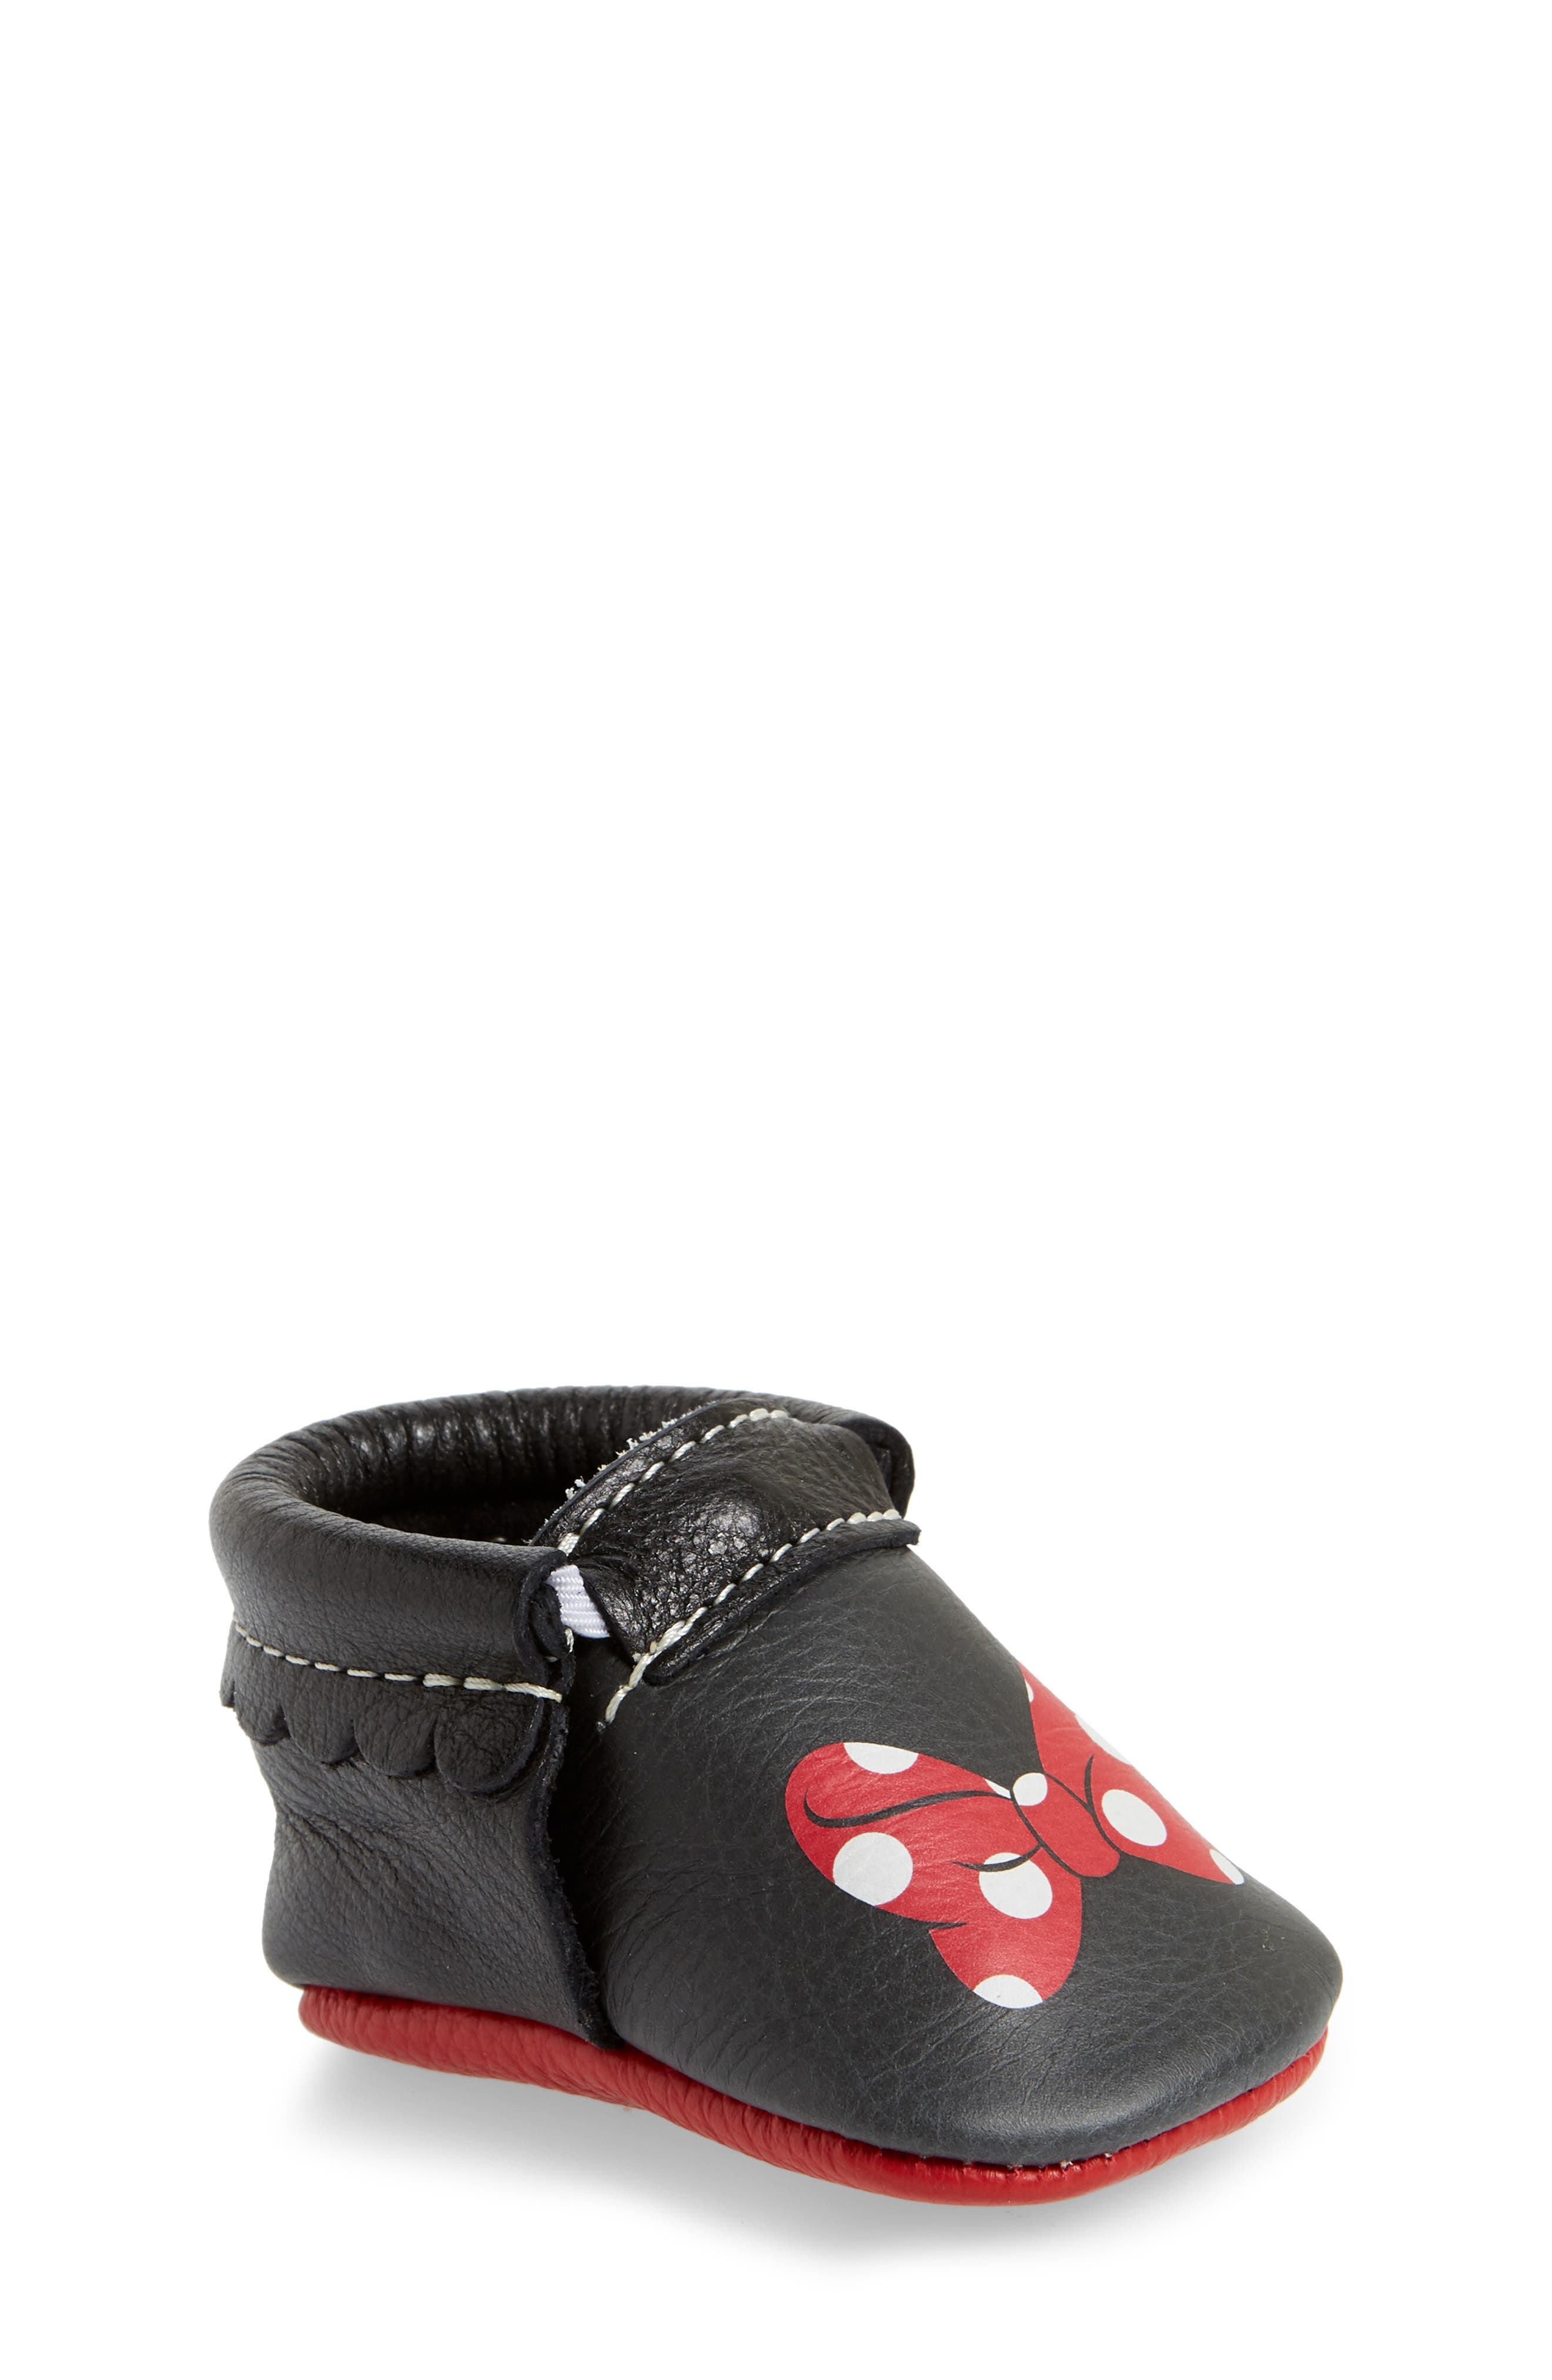 x Disney<sup>®</sup> Baby Minnie Mouse Crib Moccasin,                         Main,                         color, 001